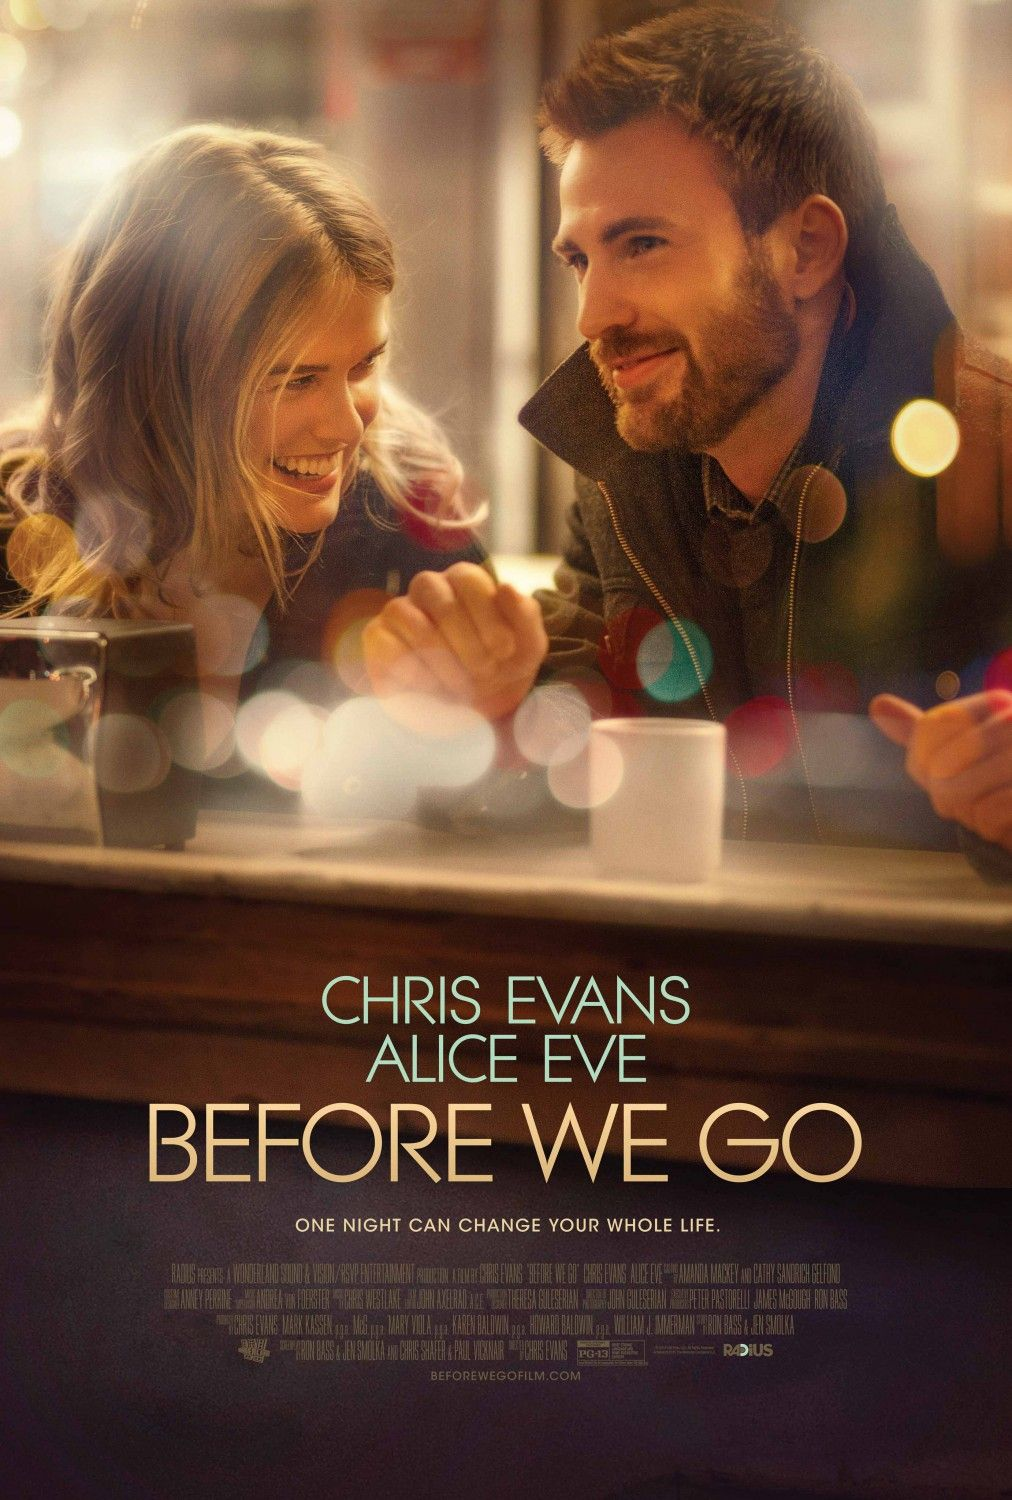 Before We Go Extra Large Movie Poster Image Internet Movie Poster Awards Gallery Before We Go Movie Streaming Movies Romantic Movies